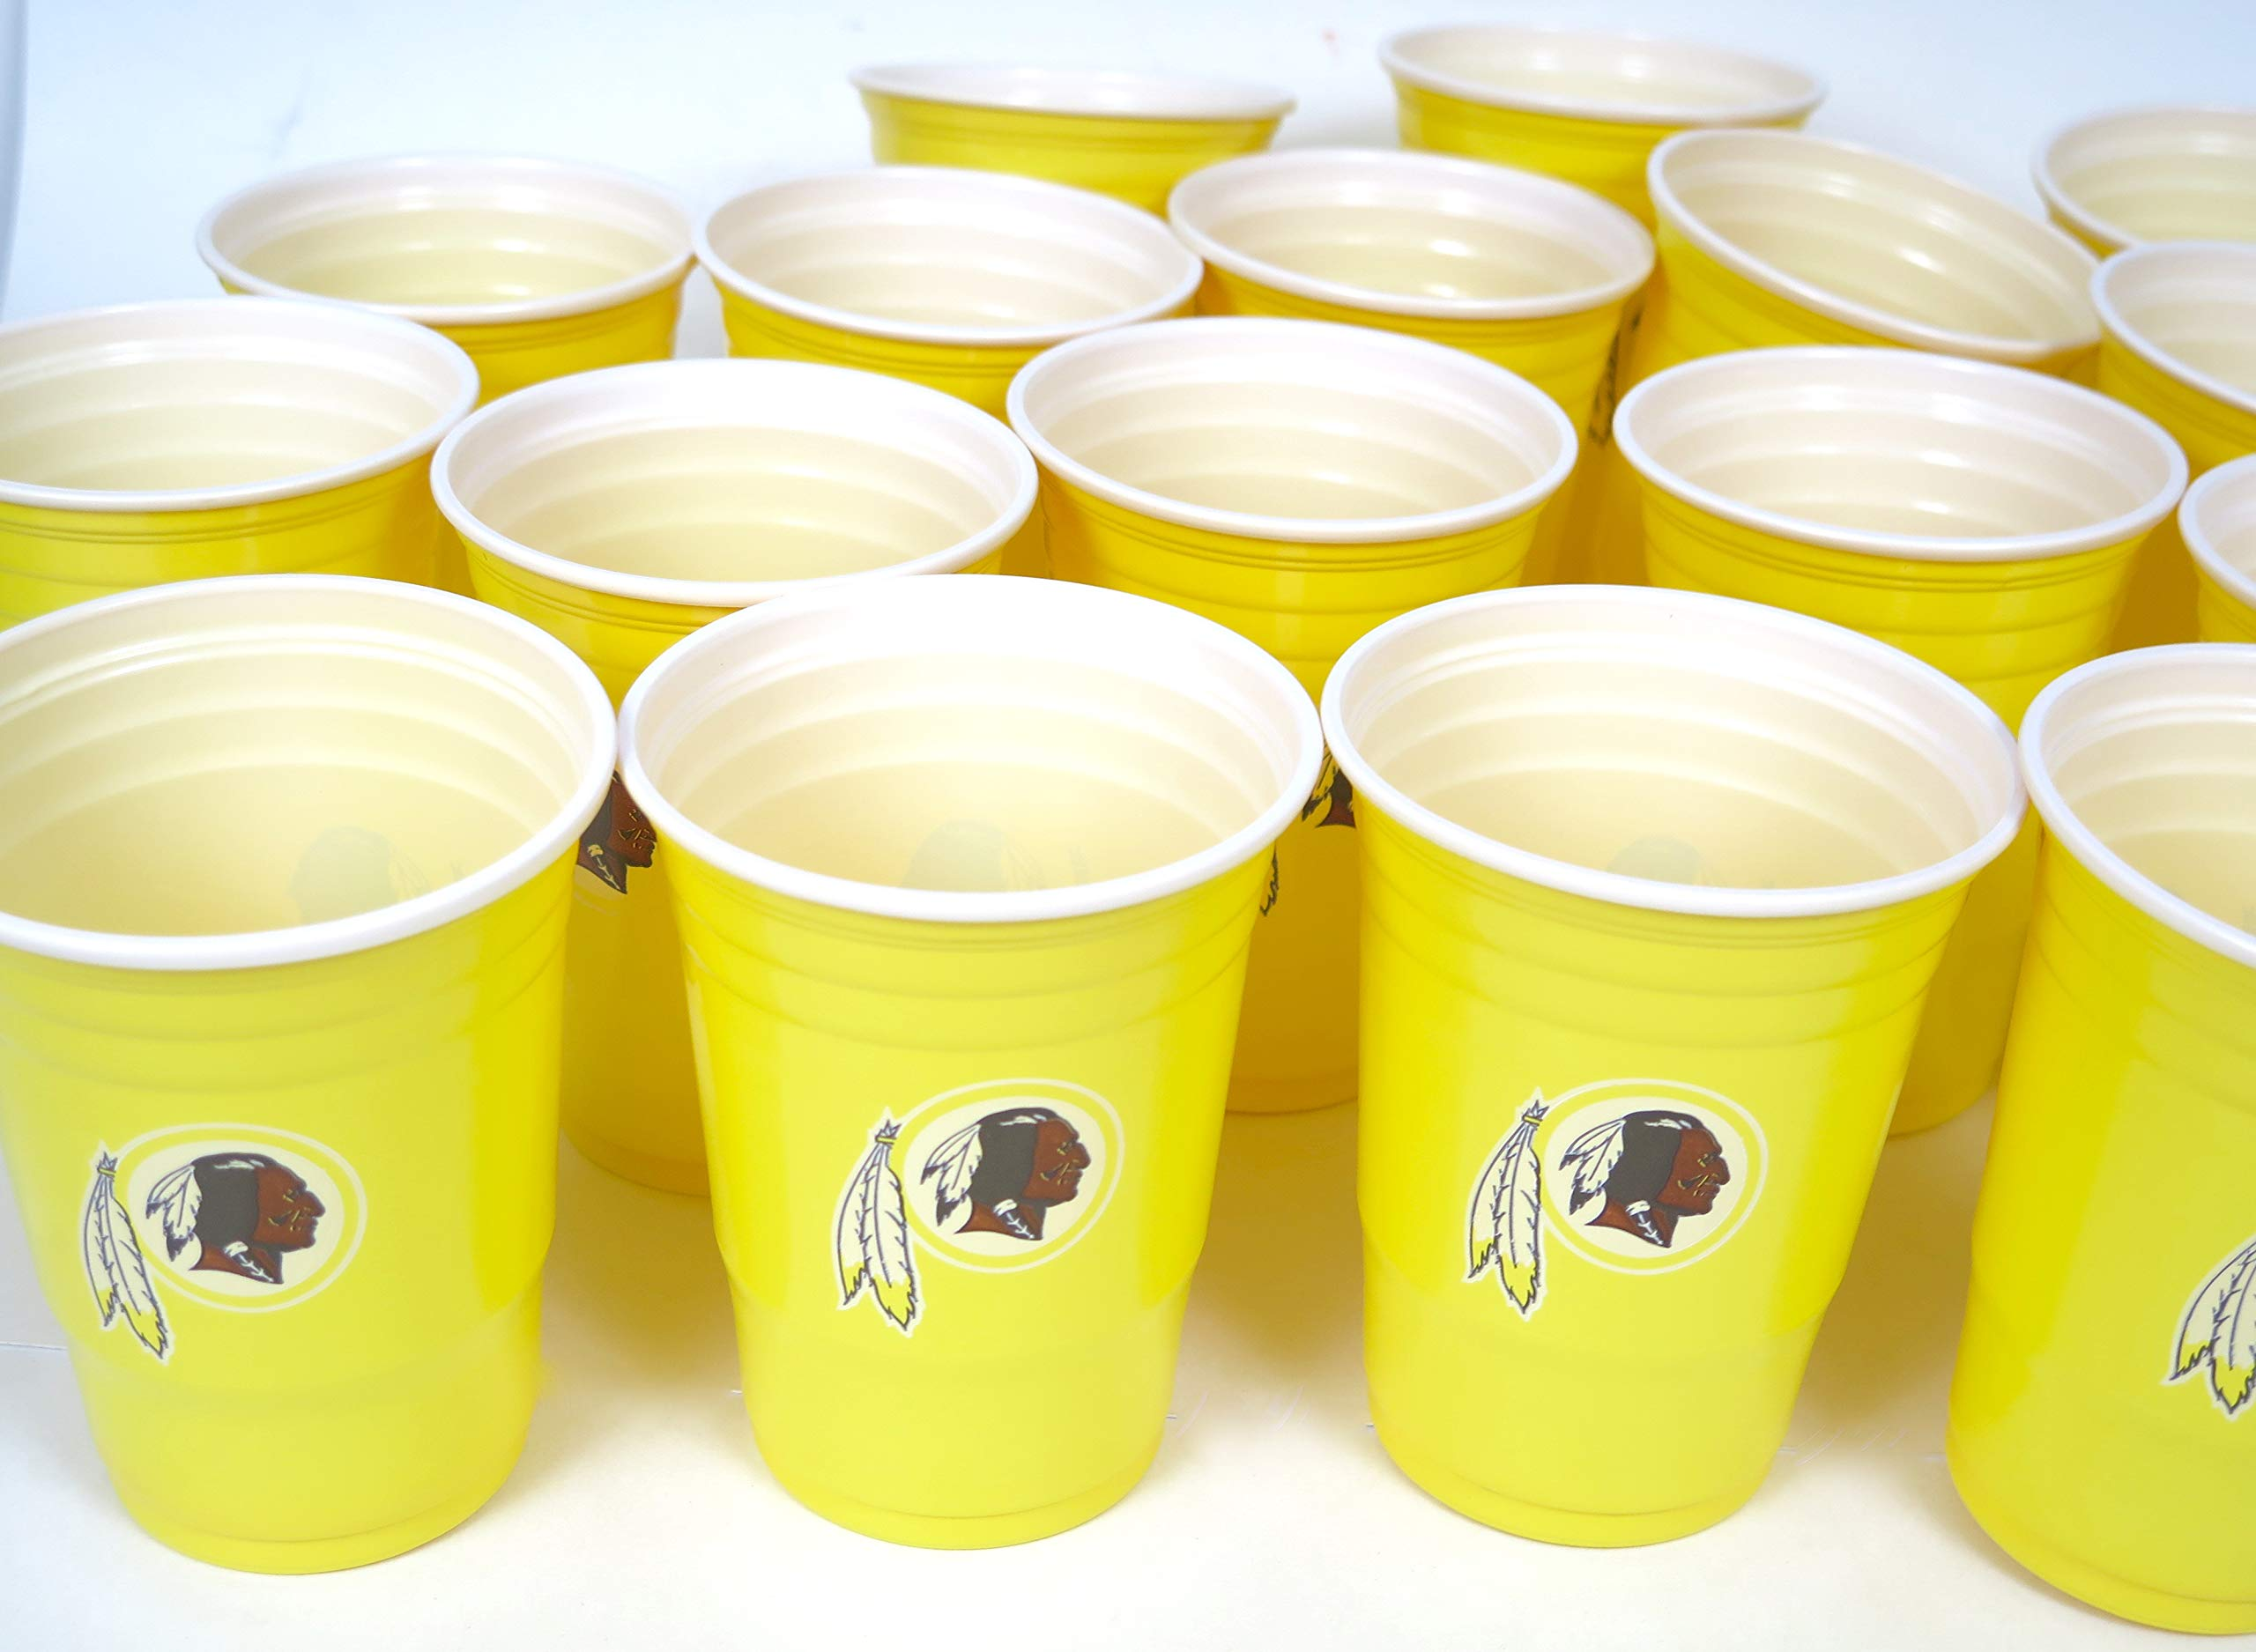 Washington Redskins Jumbo party cups set of 36. Large plastic colorful 18 oz, game day plastic cups.